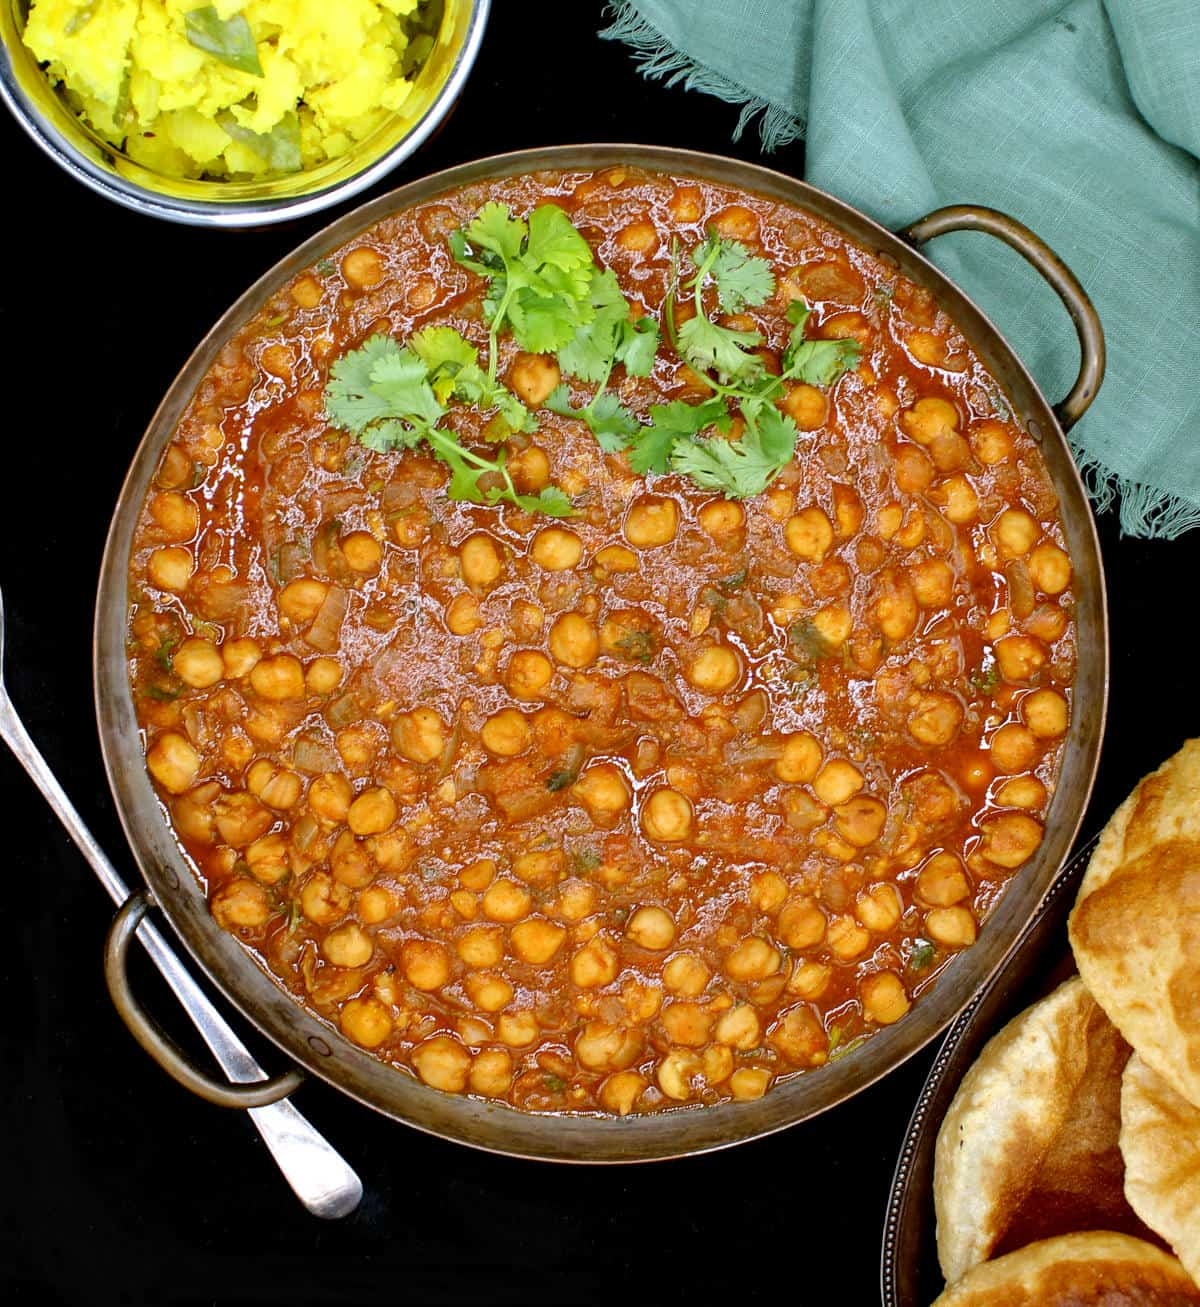 Overhead shot of chana masala in copper pan with serving spoon, potato curry and pooris.